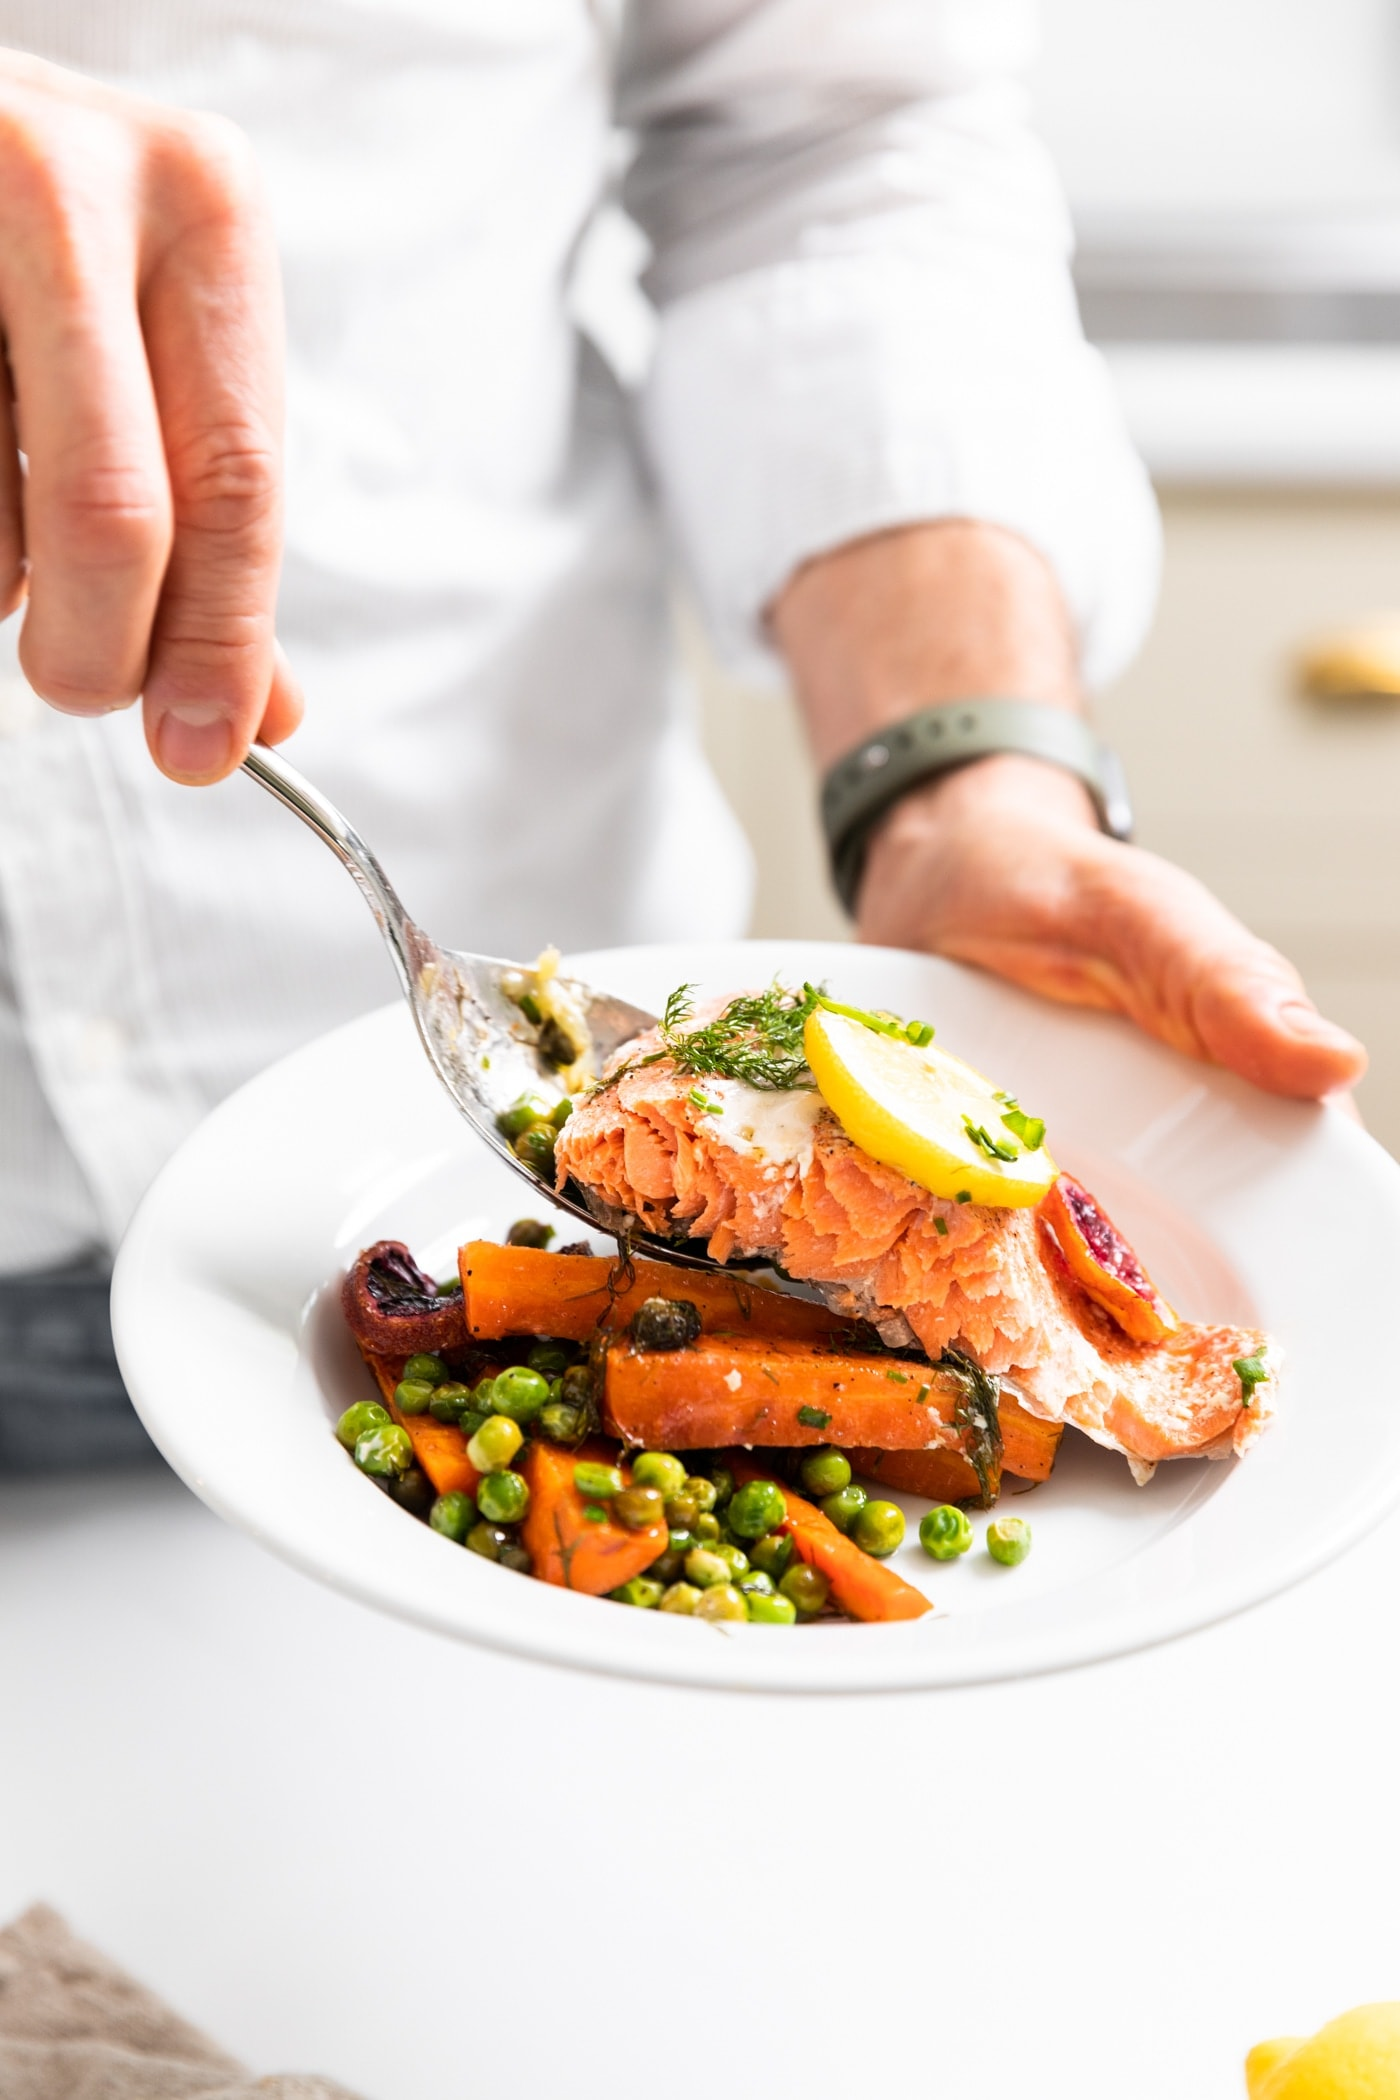 Hand holding white plate with peas and carrots with a filet of salmon being placed on plate